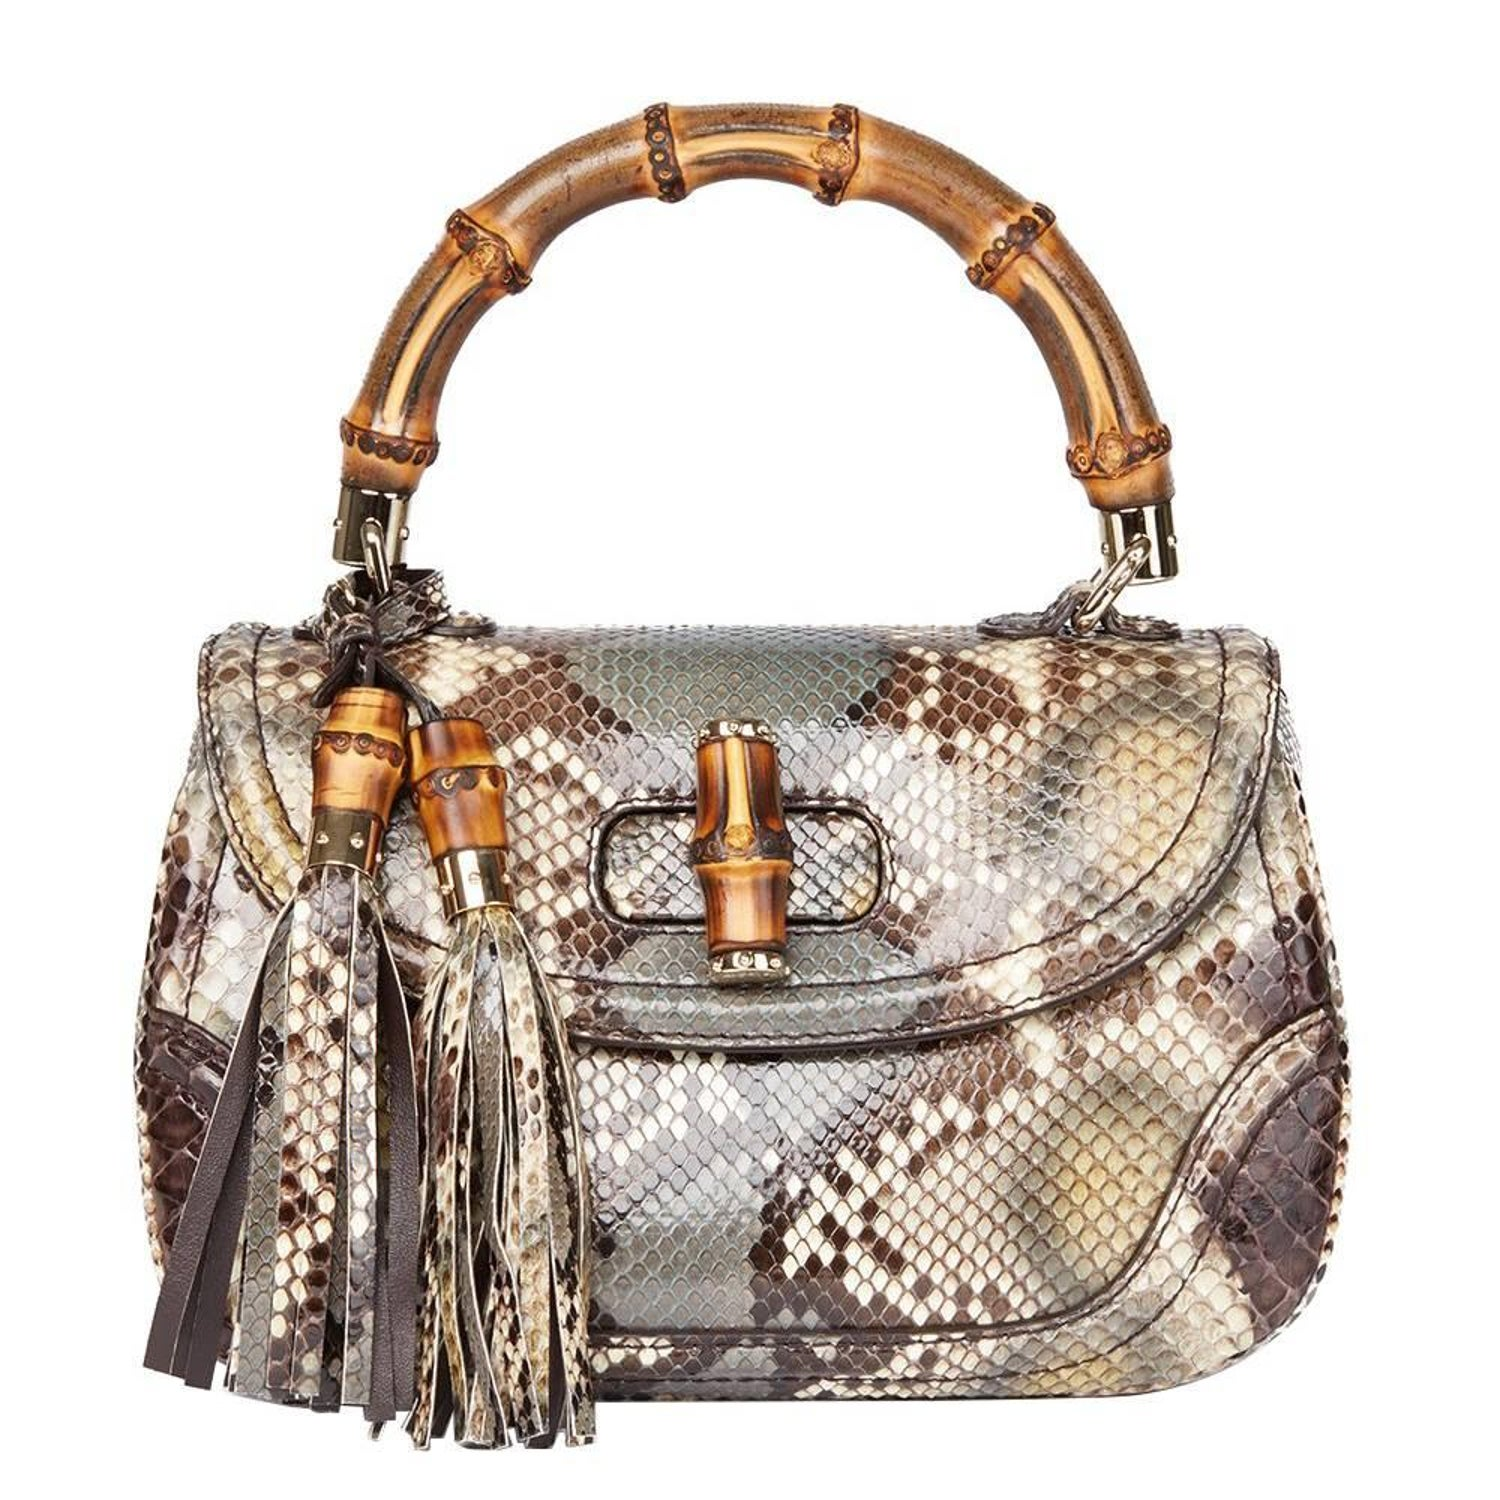 c37956b2a41 2010 Gucci Khaki Python Leather Bamboo Classic Top Handle at 1stdibs